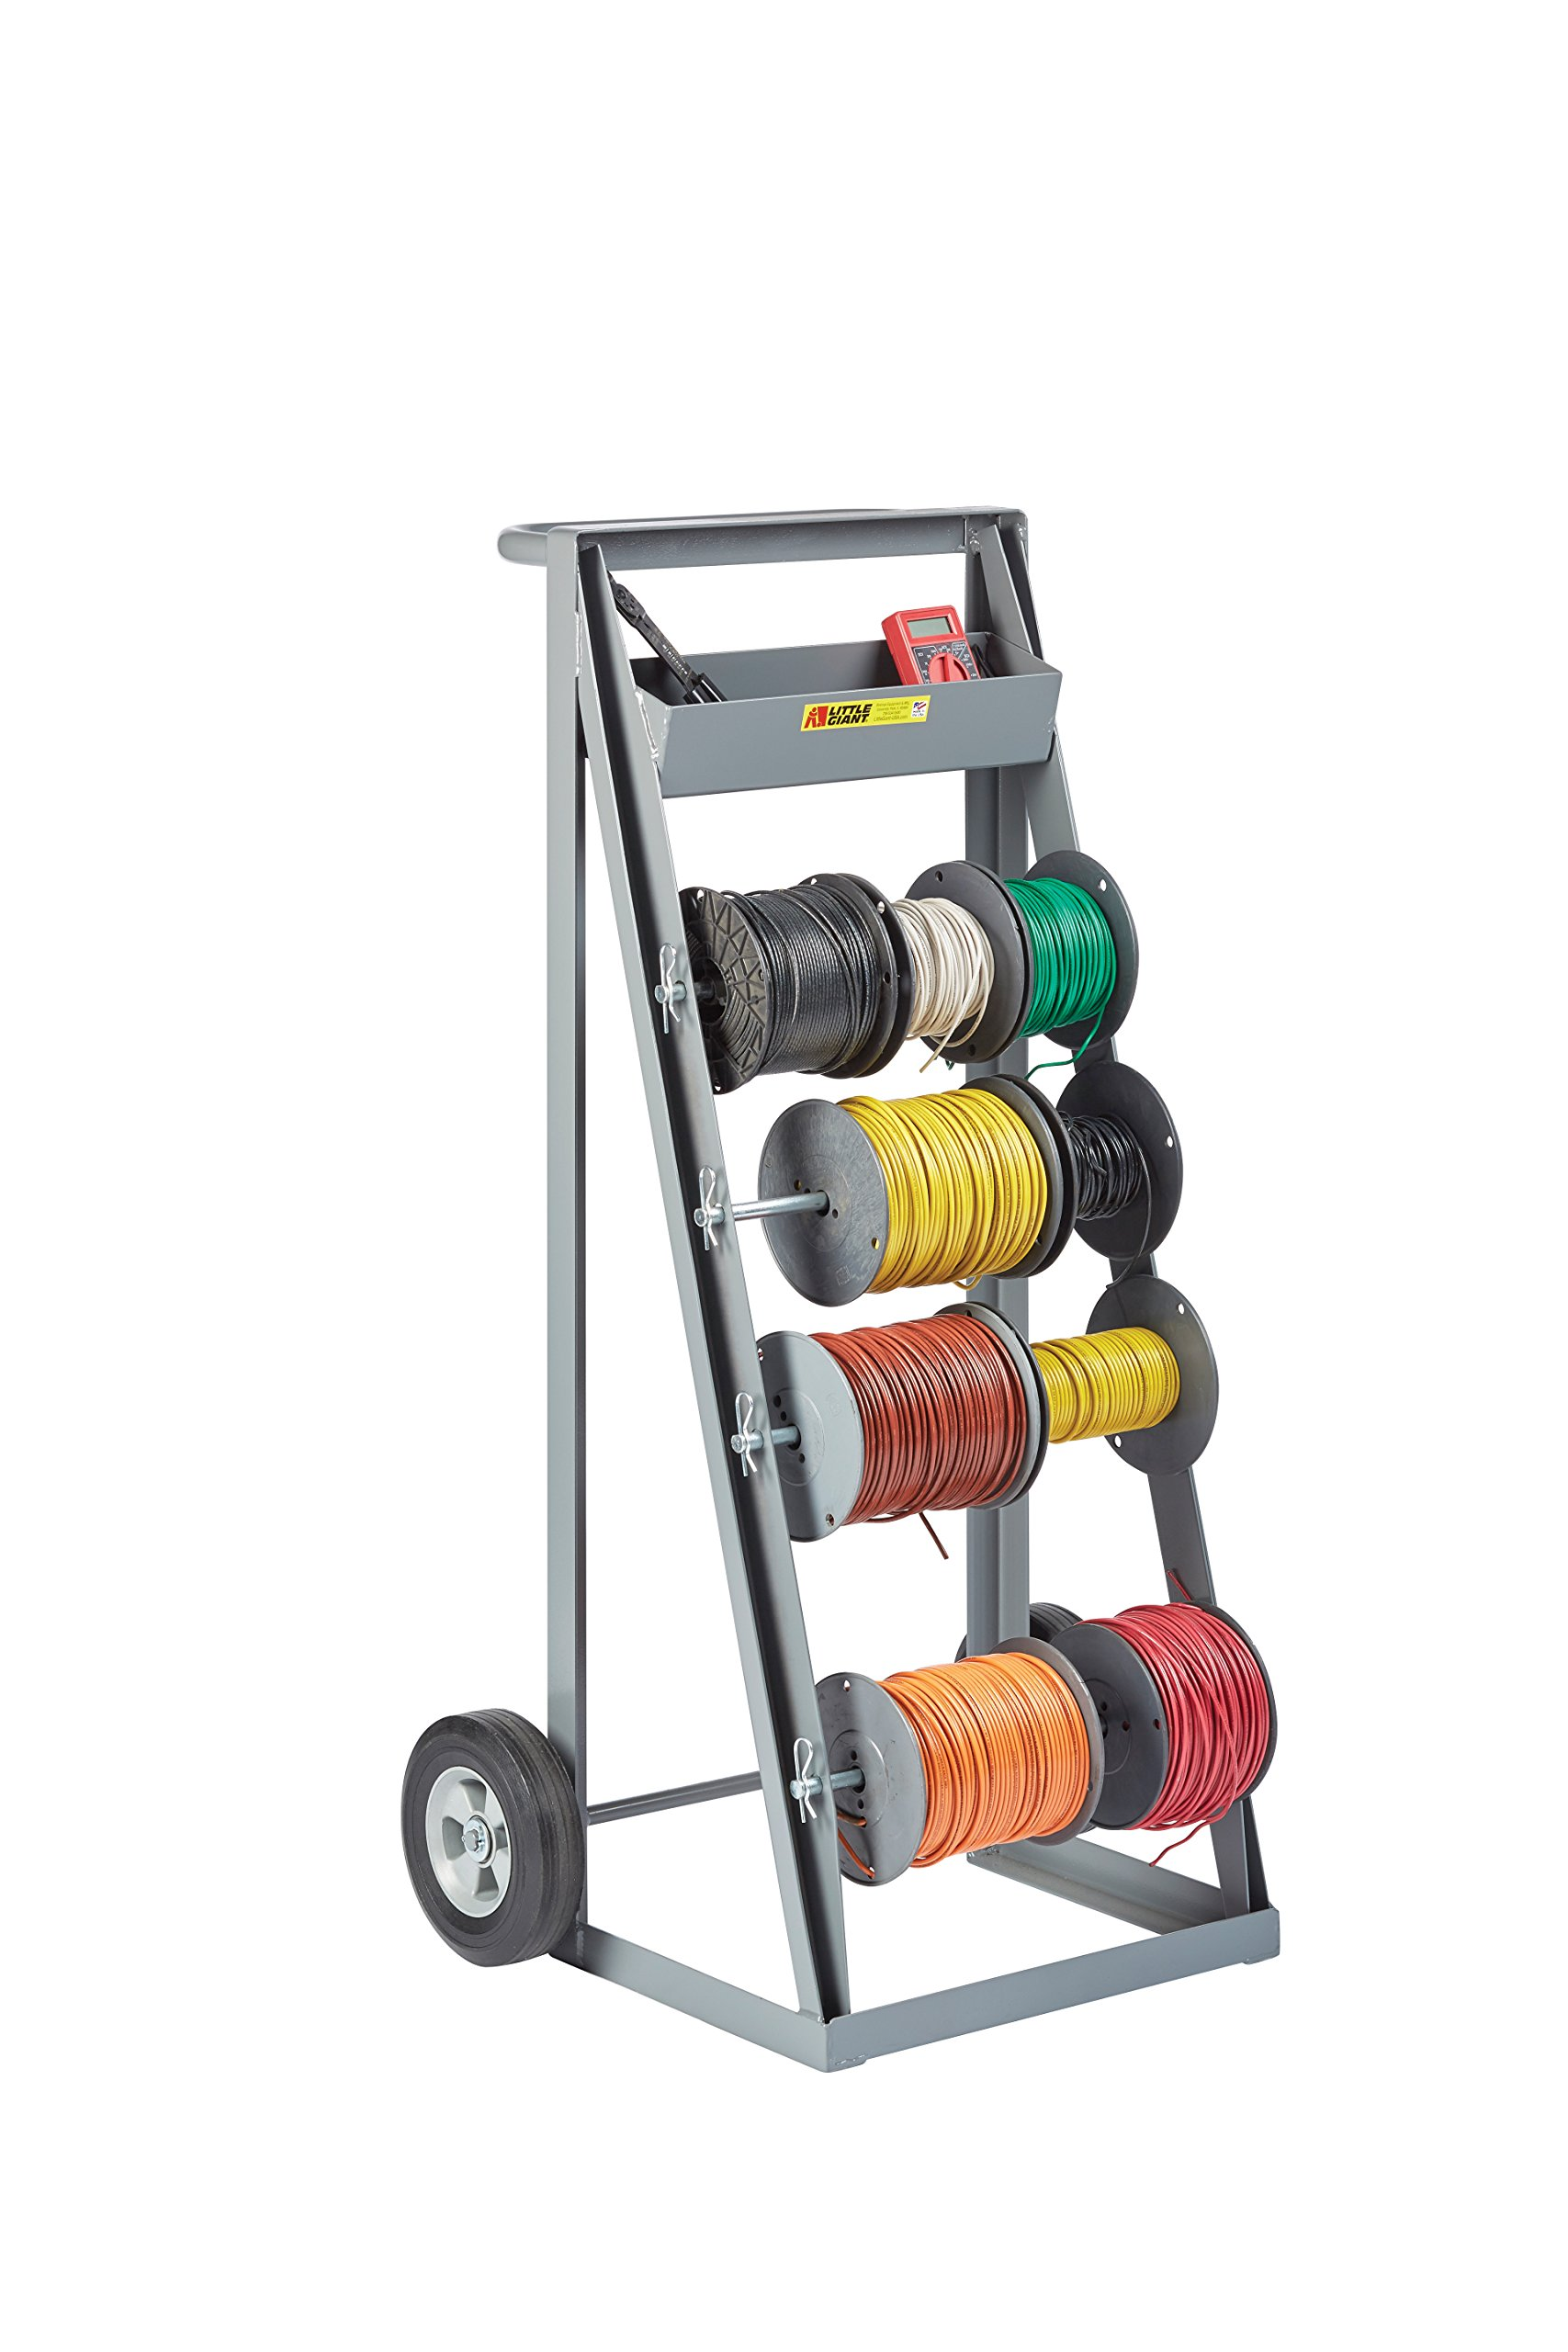 Little Giant RT4-8S Bulk Handling Wire Reel Caddy with Full Width Handle and Convenient Tool Tray, Gray Finish